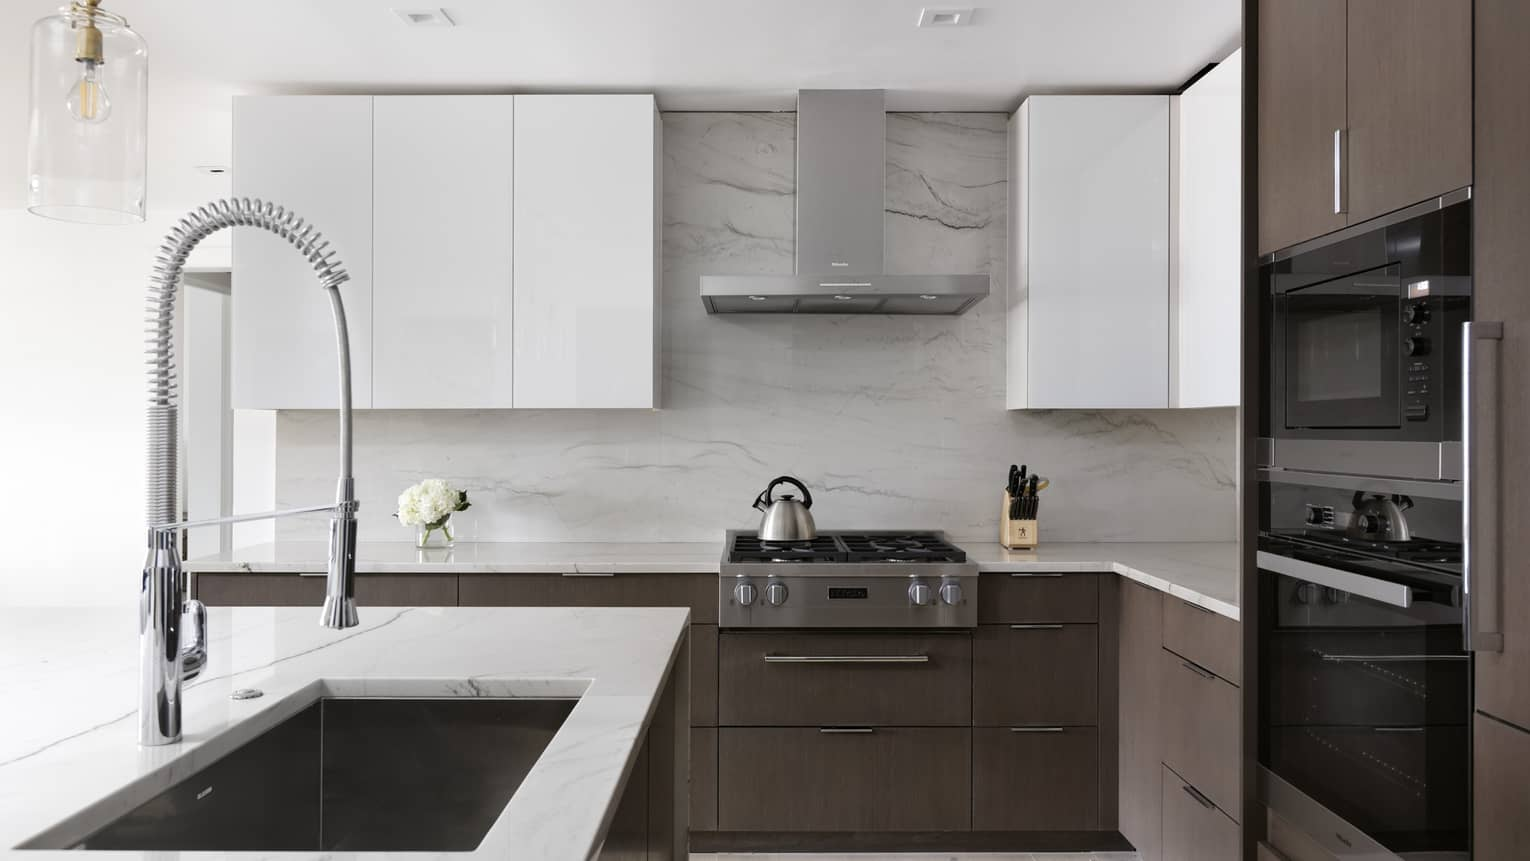 Kitchen with white cupboards and white marble countertops, dark wood lower cabinets